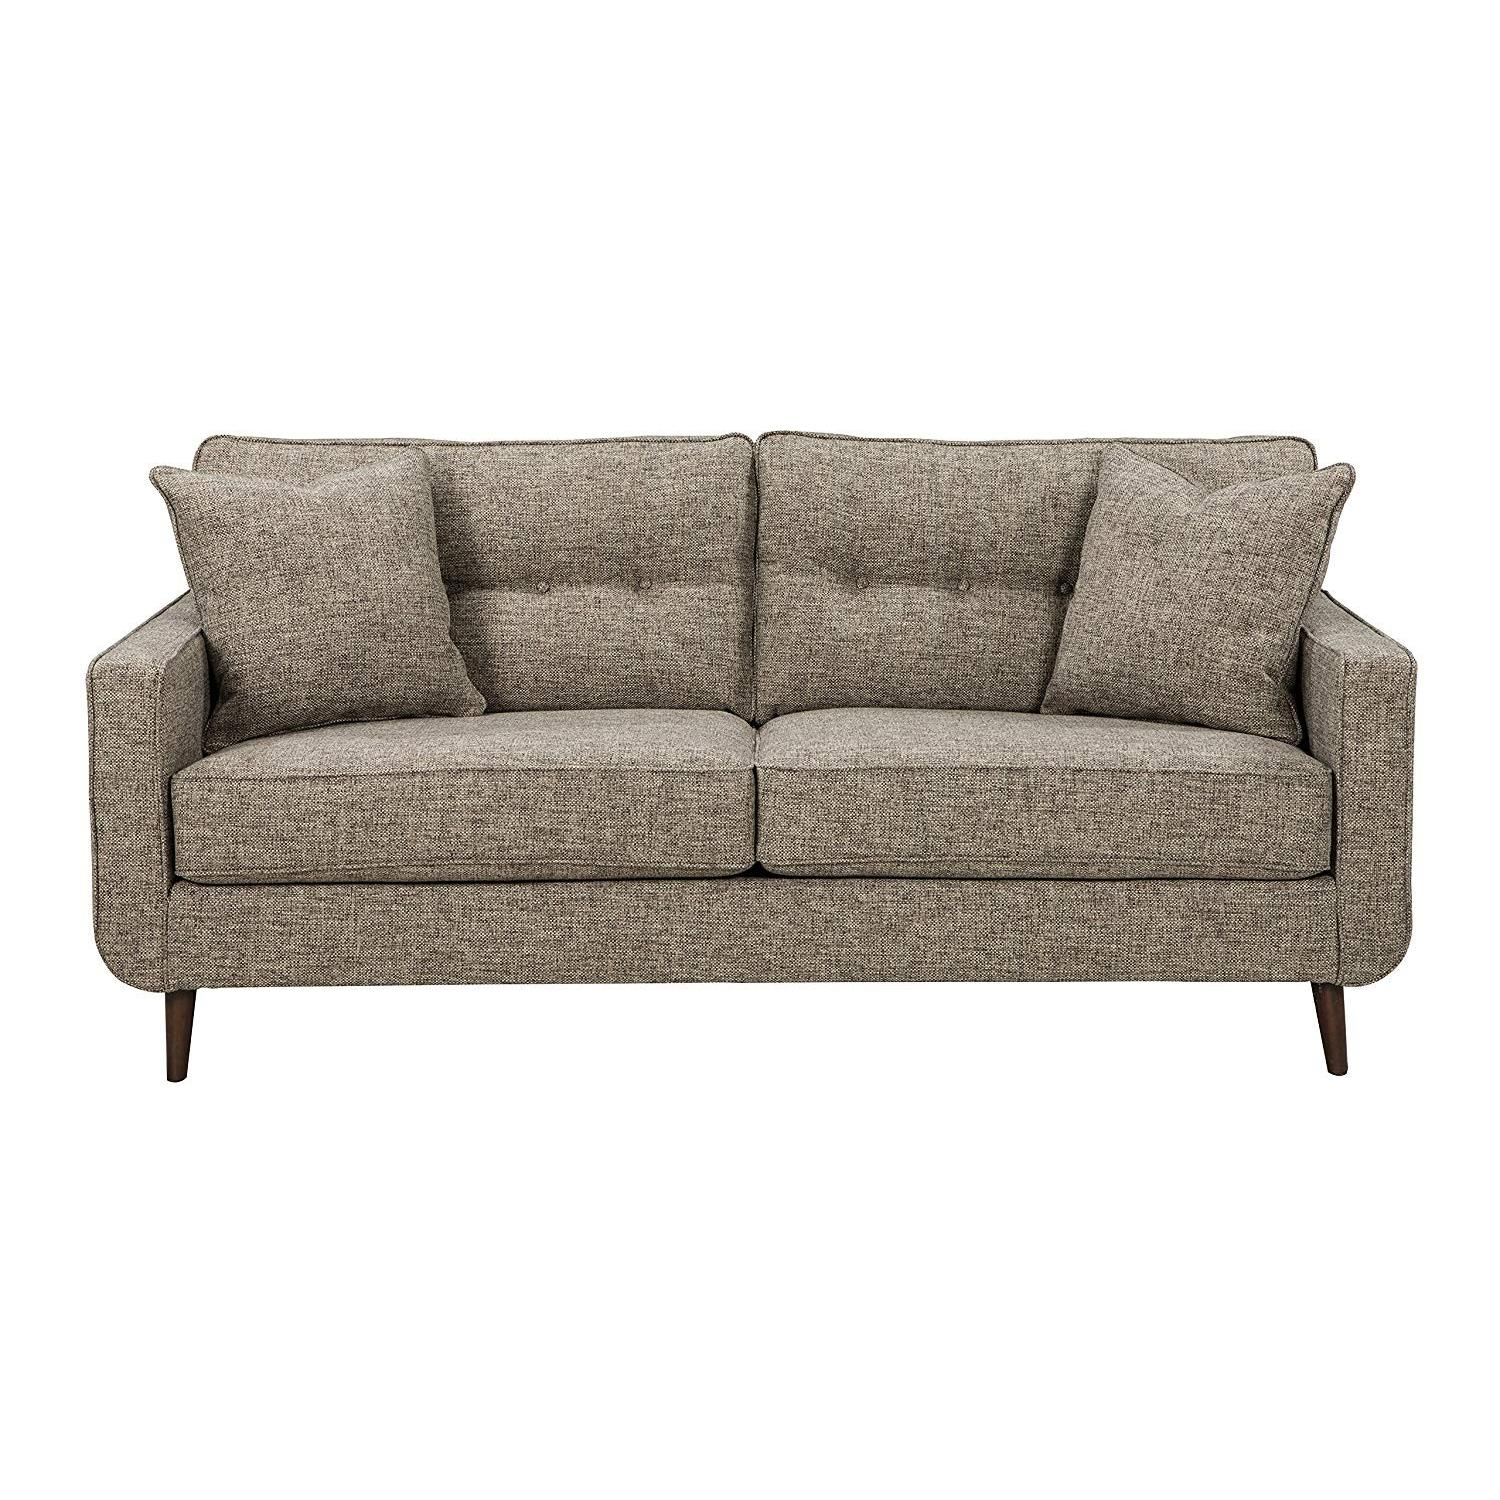 Ashley Chento Jute Sofa in Beige/Natural - image-1